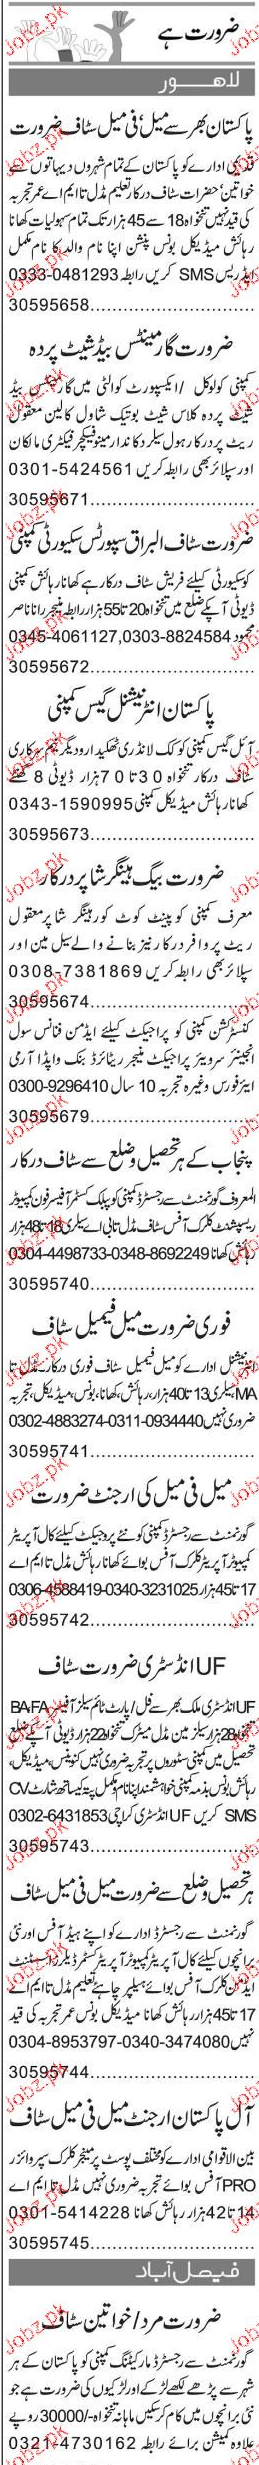 Civil Engineers, Project Manager Job Opportunity